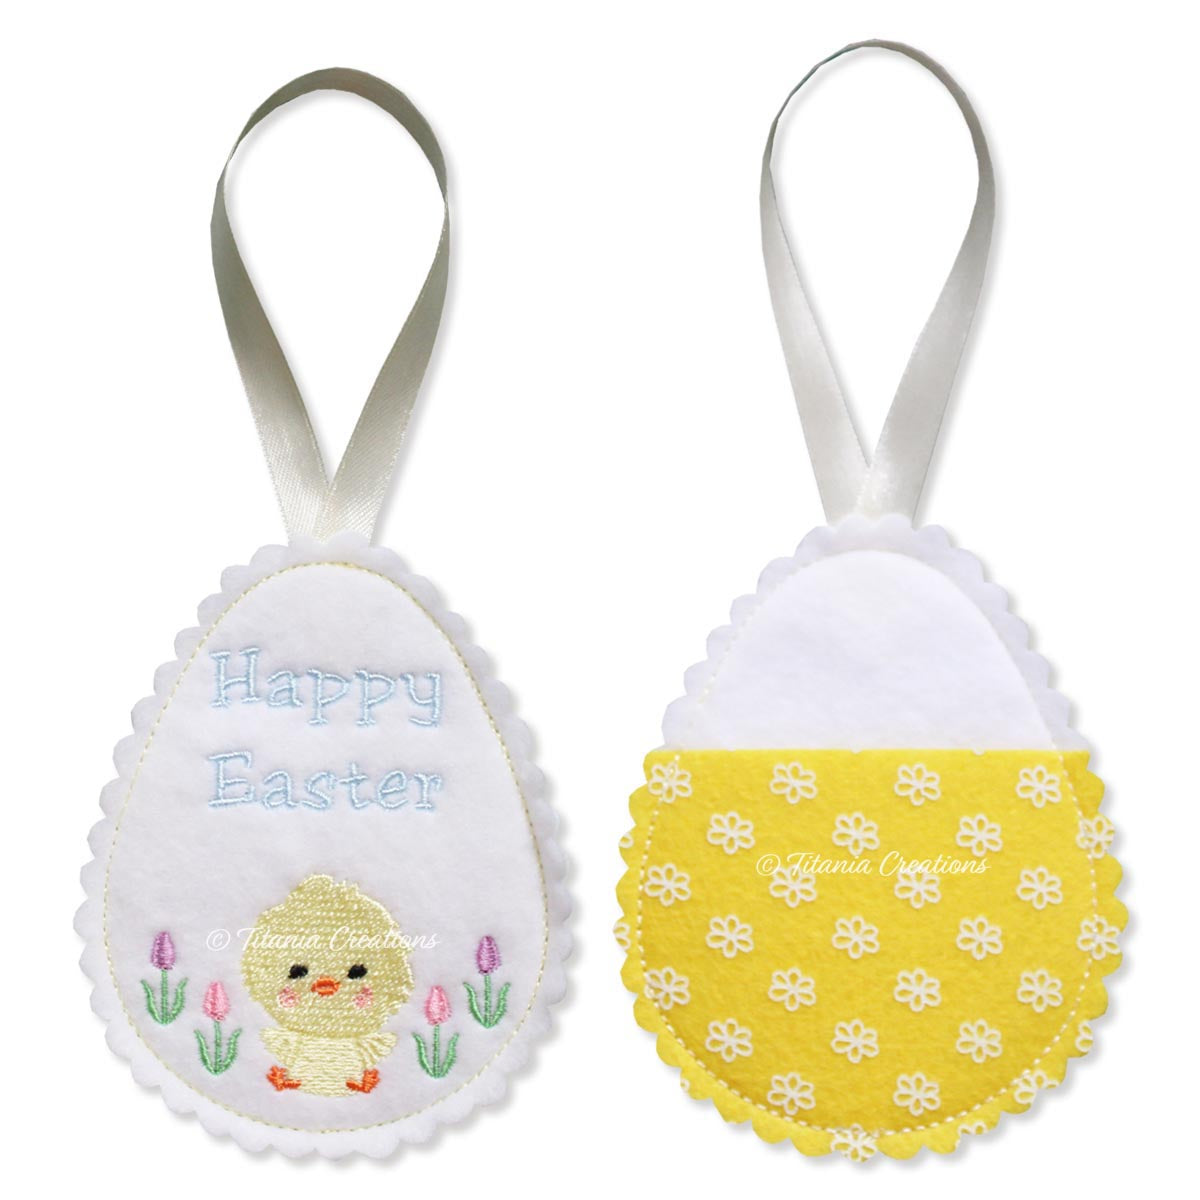 ITH Chick Easter Egg Treat Holder 4x4 5x7